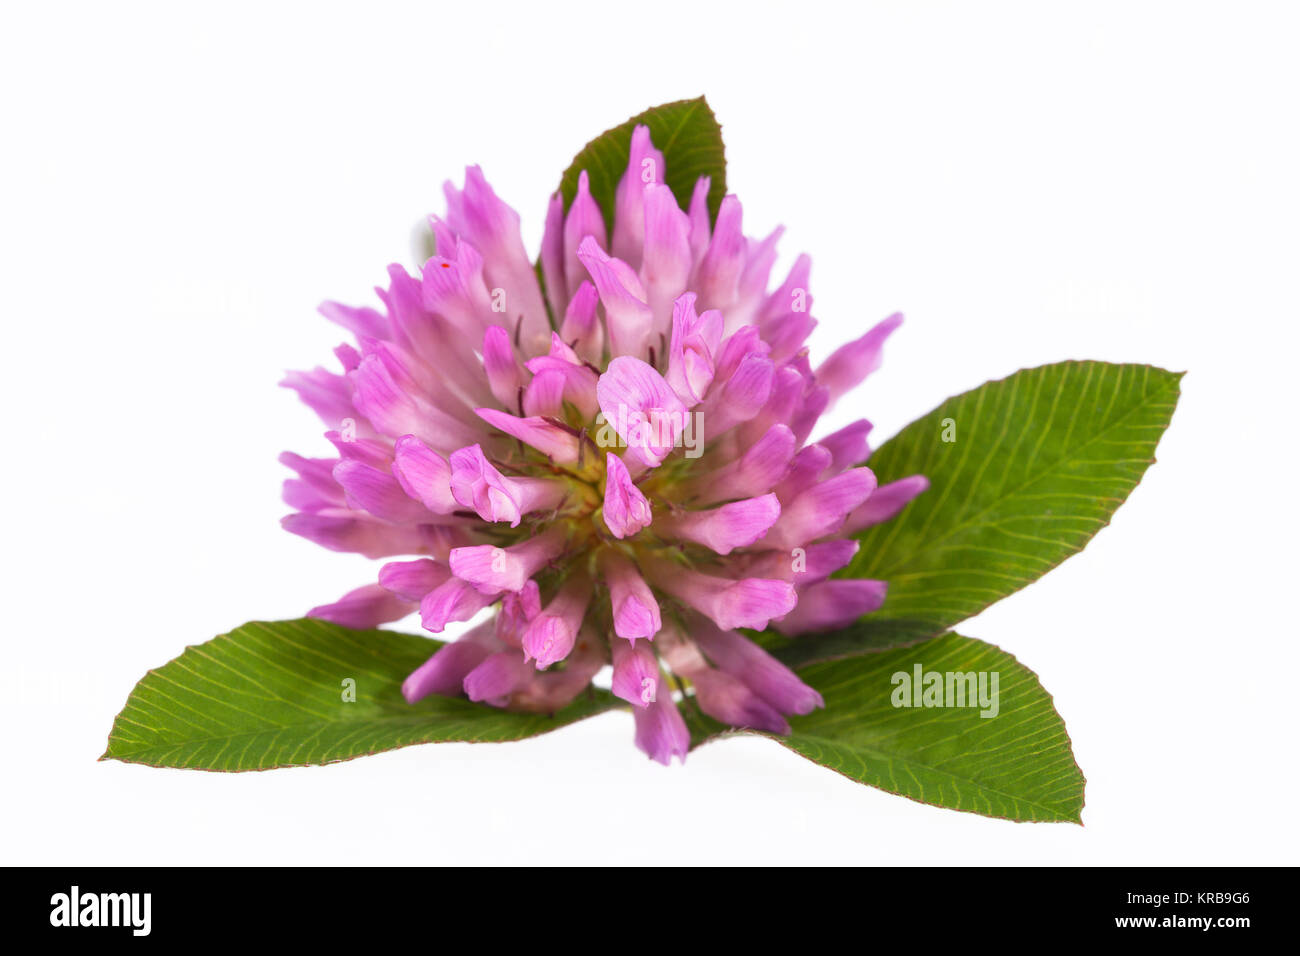 Single Flower Of Pink Clover Isolated On White Background Close Up